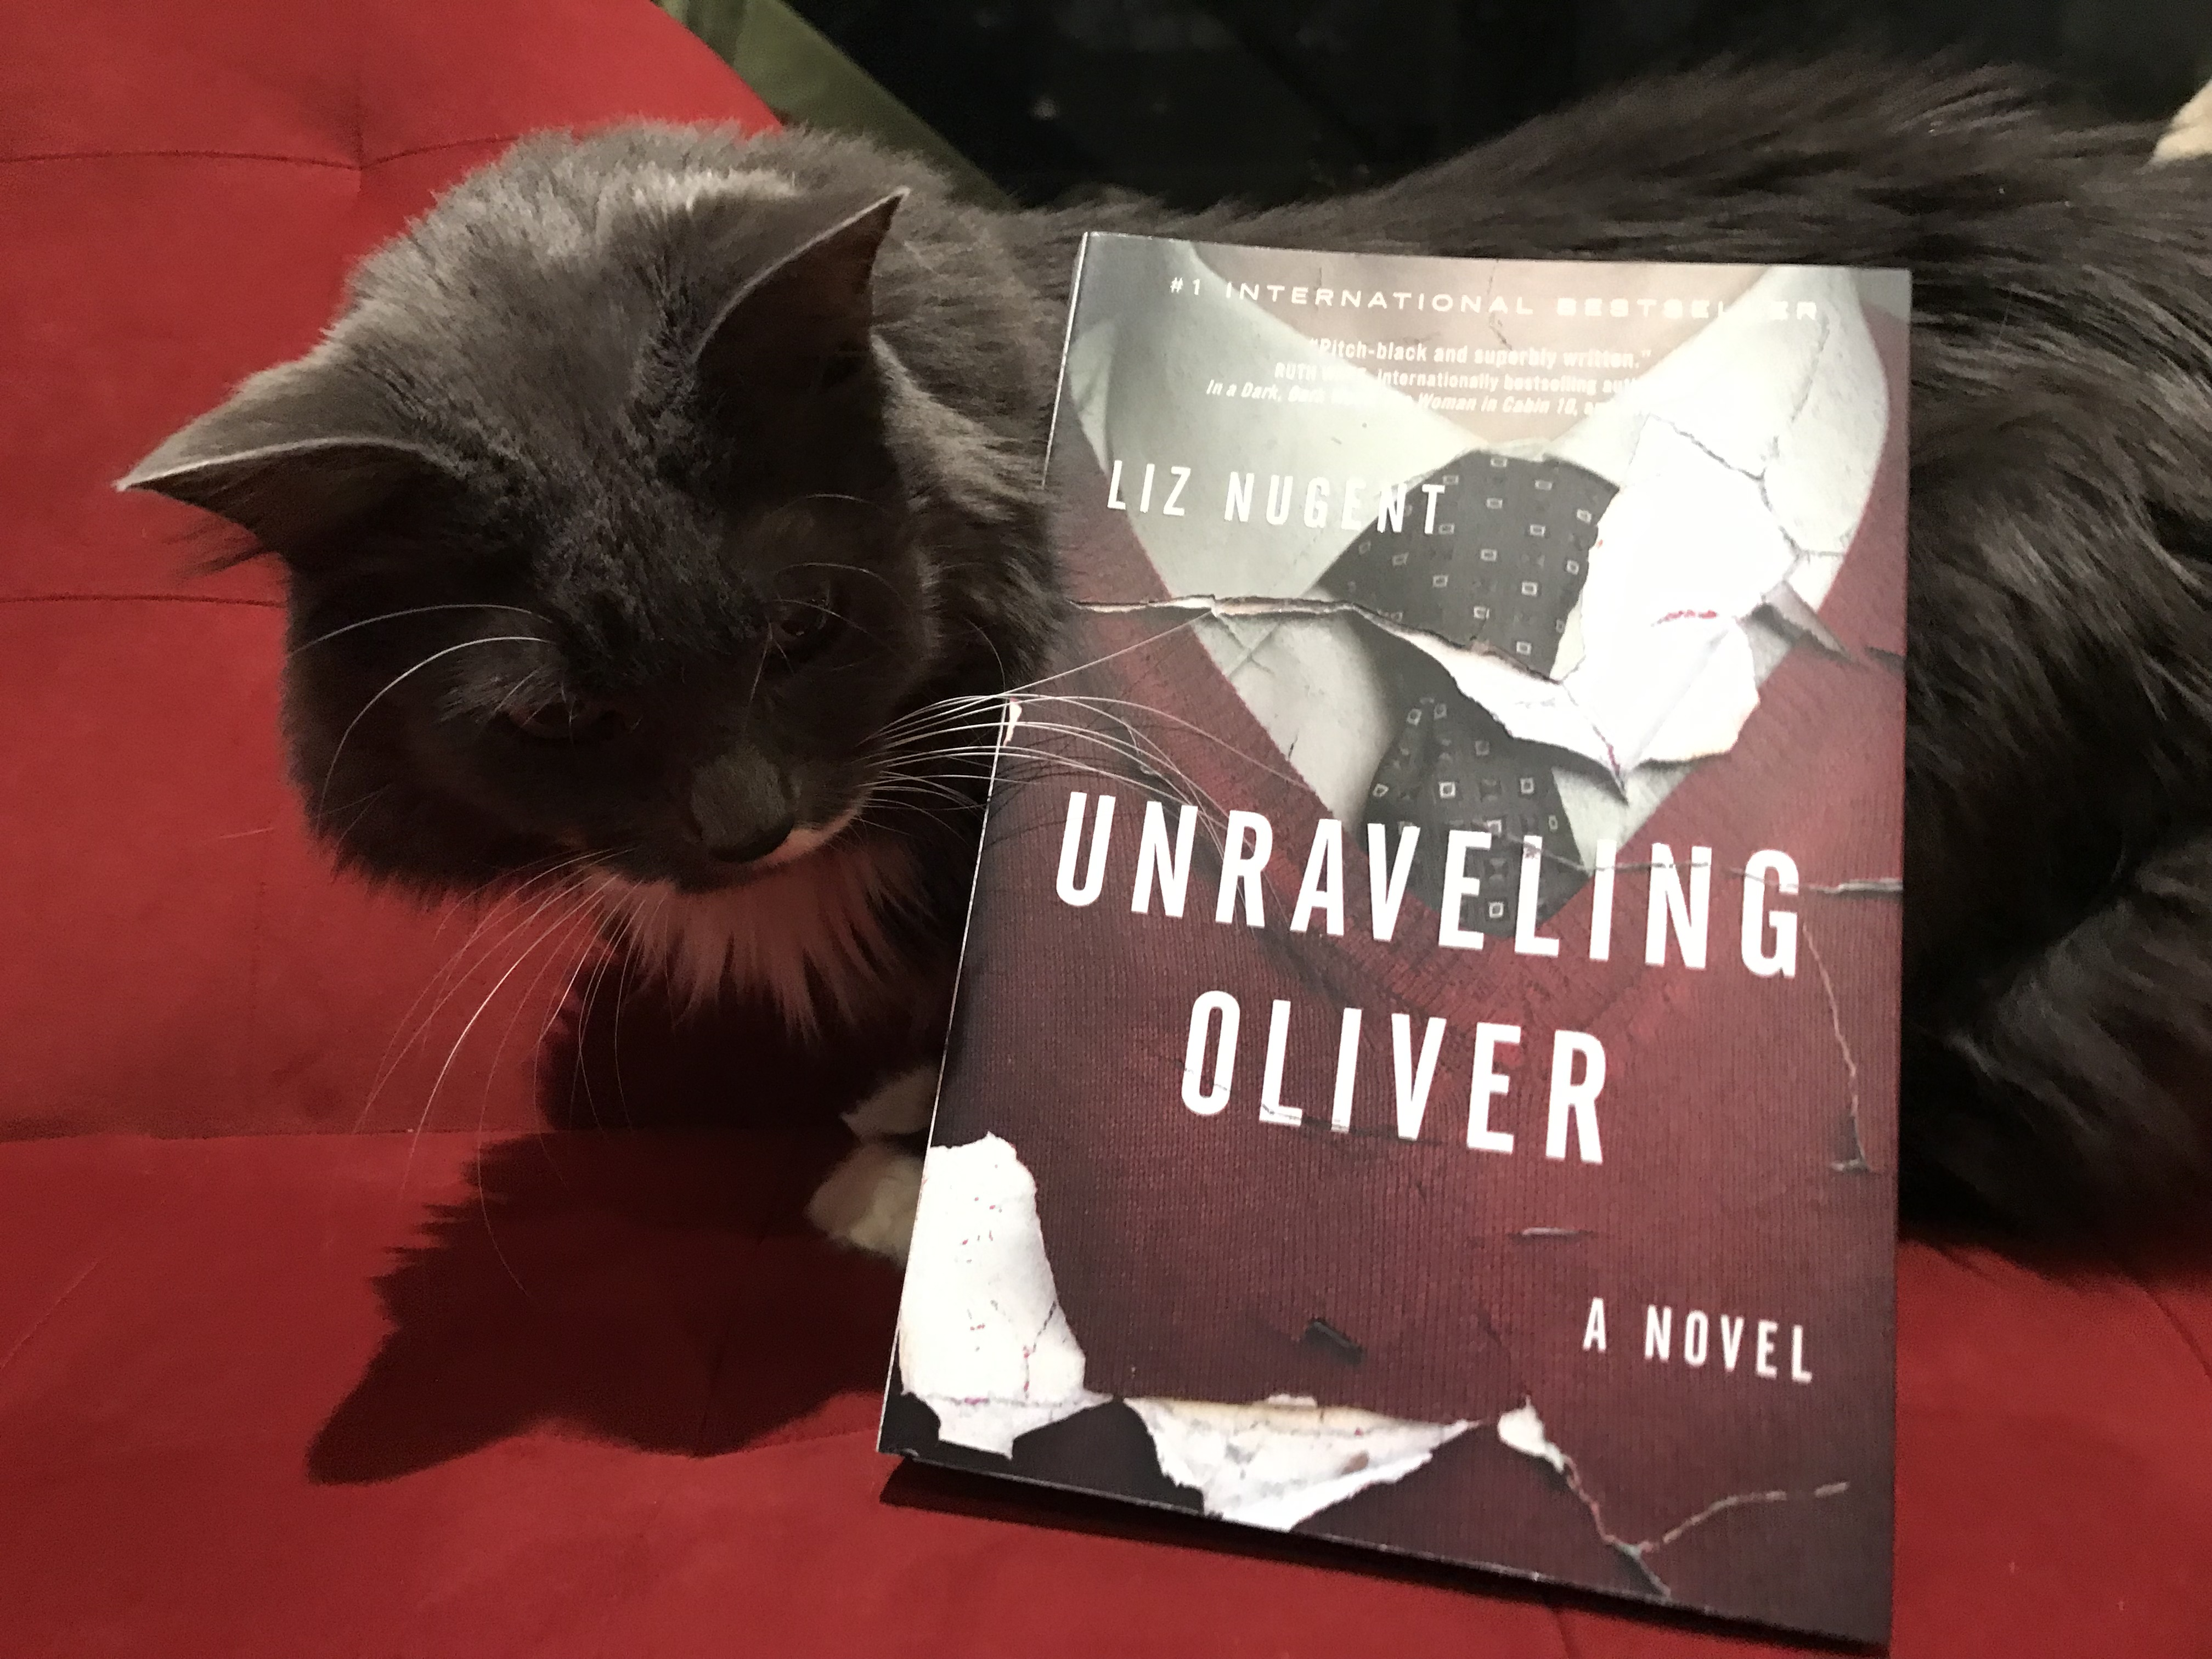 Book Review: Unraveling Oliver by Liz Nugent